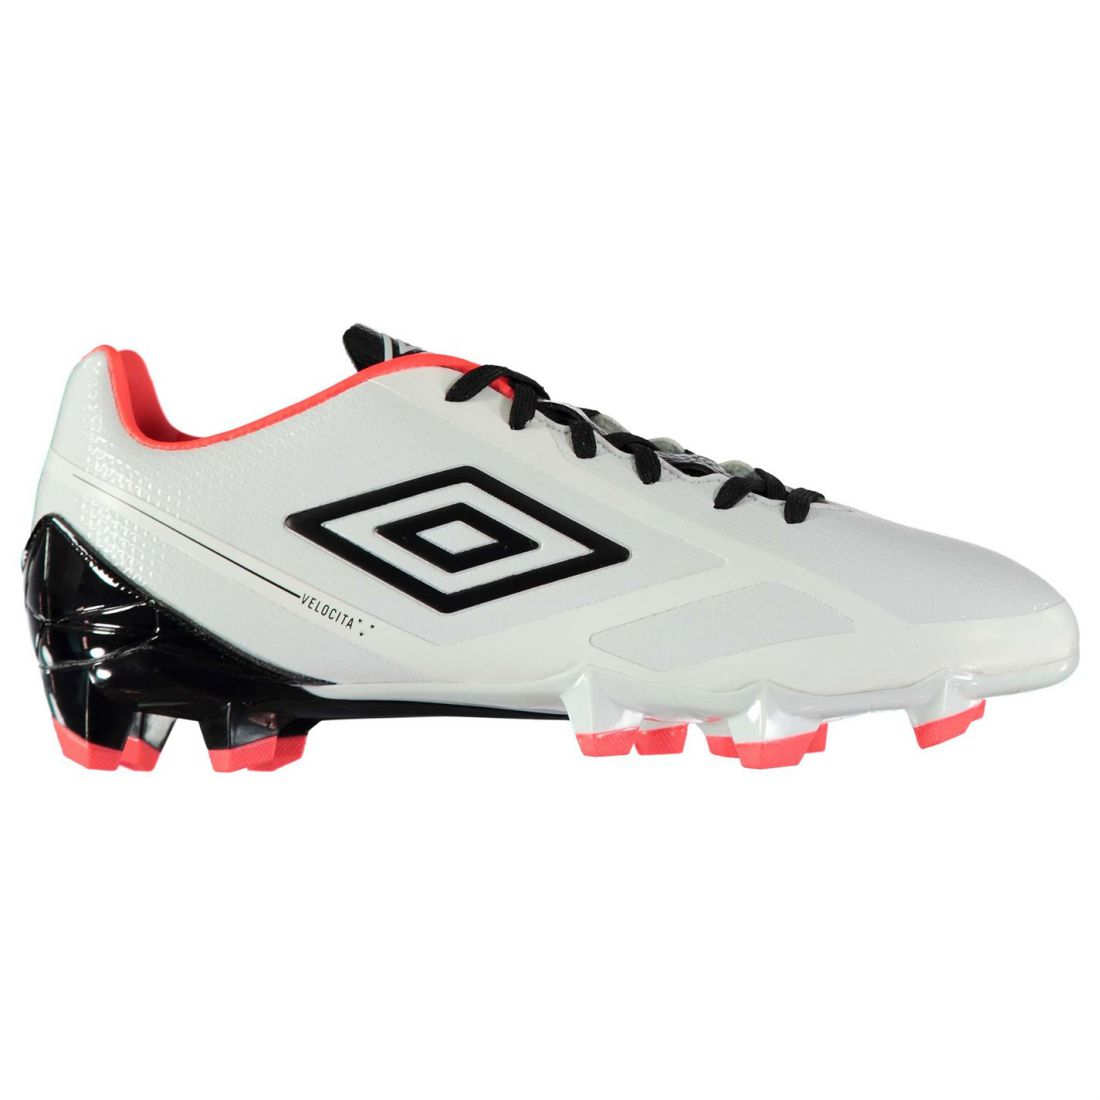 c195ff708 Umbro Velocita 2 Premier FG Football Boots Mens Gents Firm Ground ...